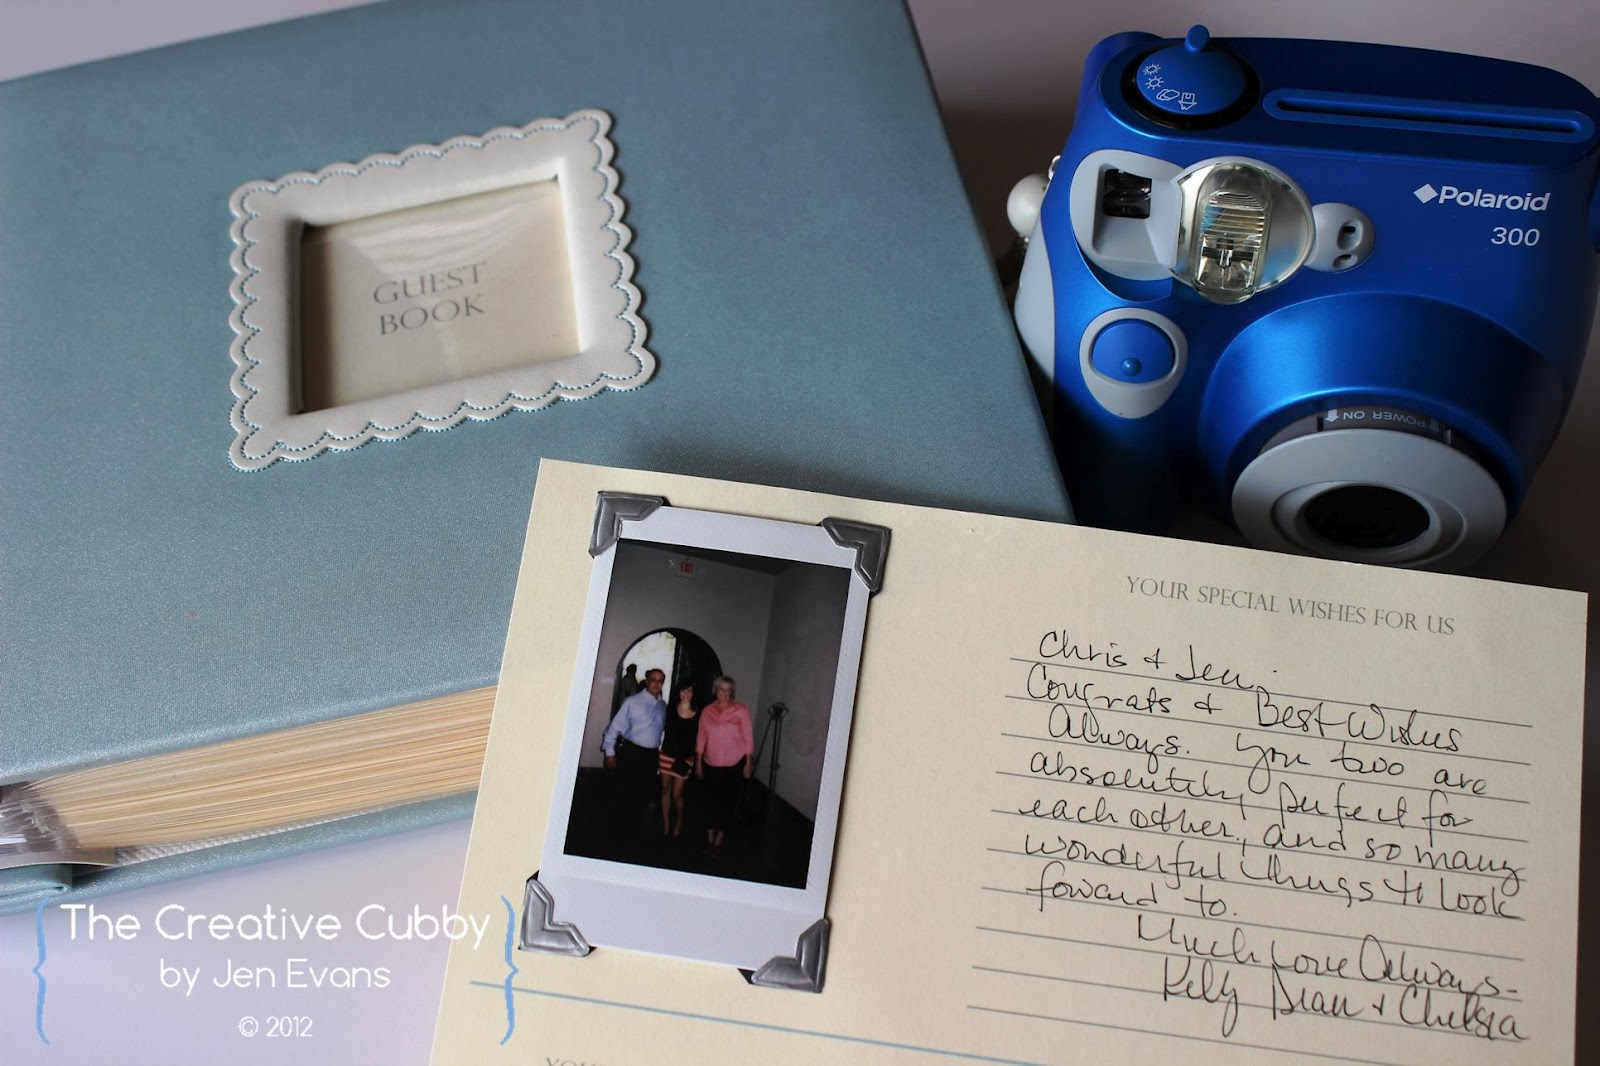 The creative cubby polaroid wedding guest book for Photo wedding guest book